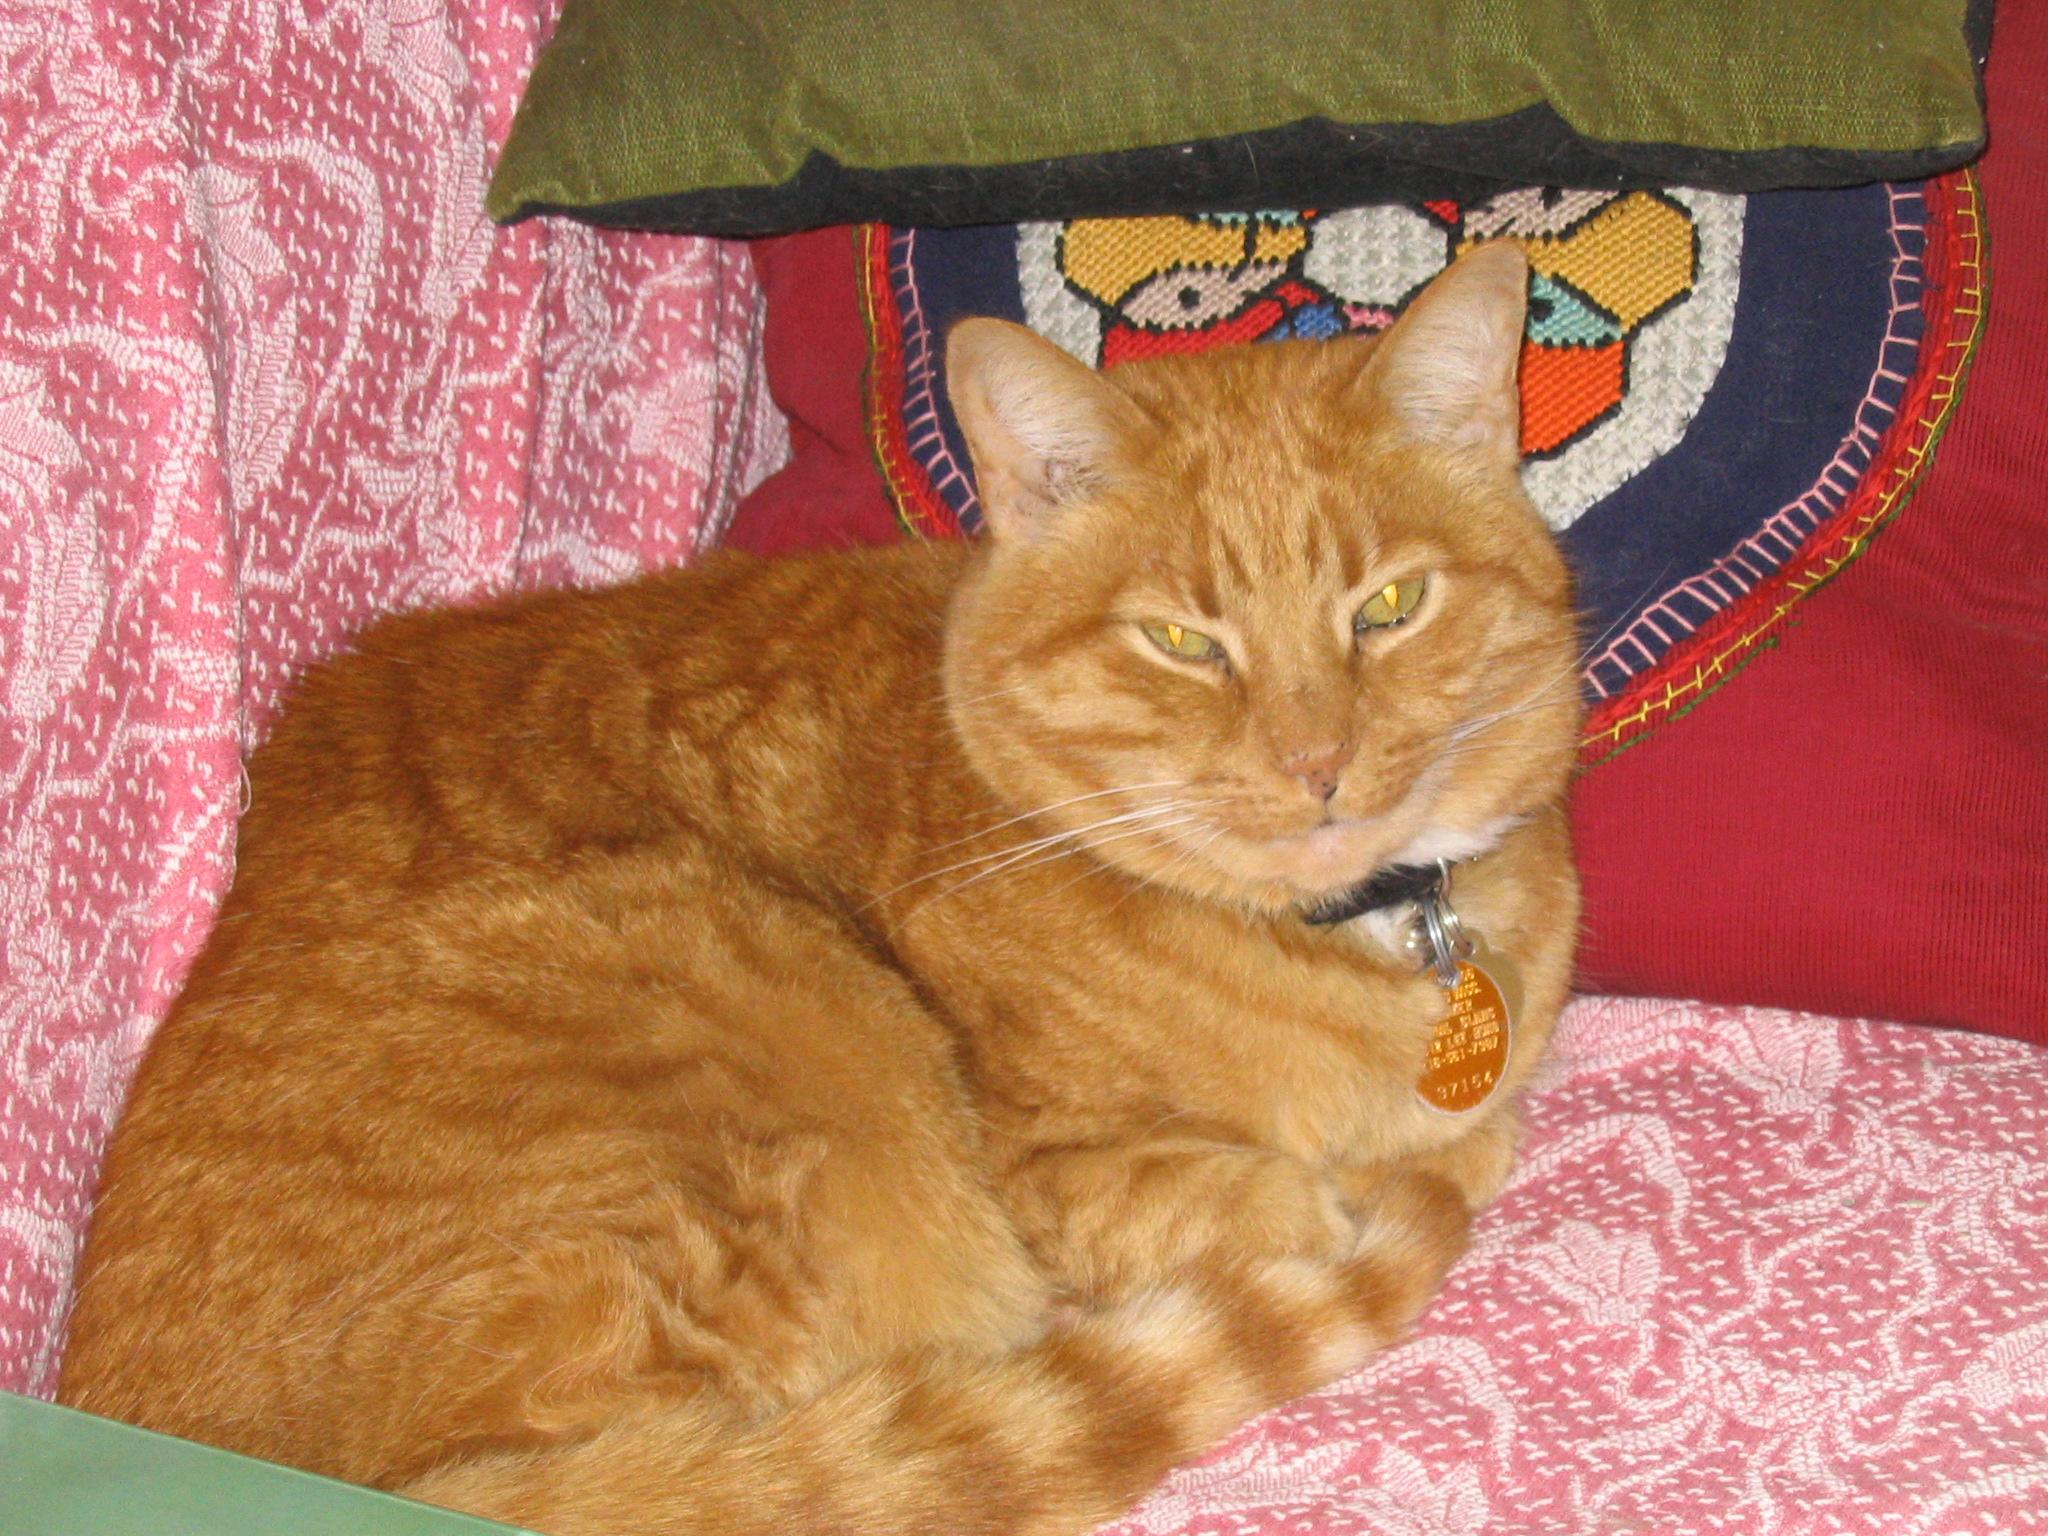 Its friday cat pictures it s friday so it s time for - It S Friday So It S Time For Sappy Cat Blogging Tinker On A Soft Sofa